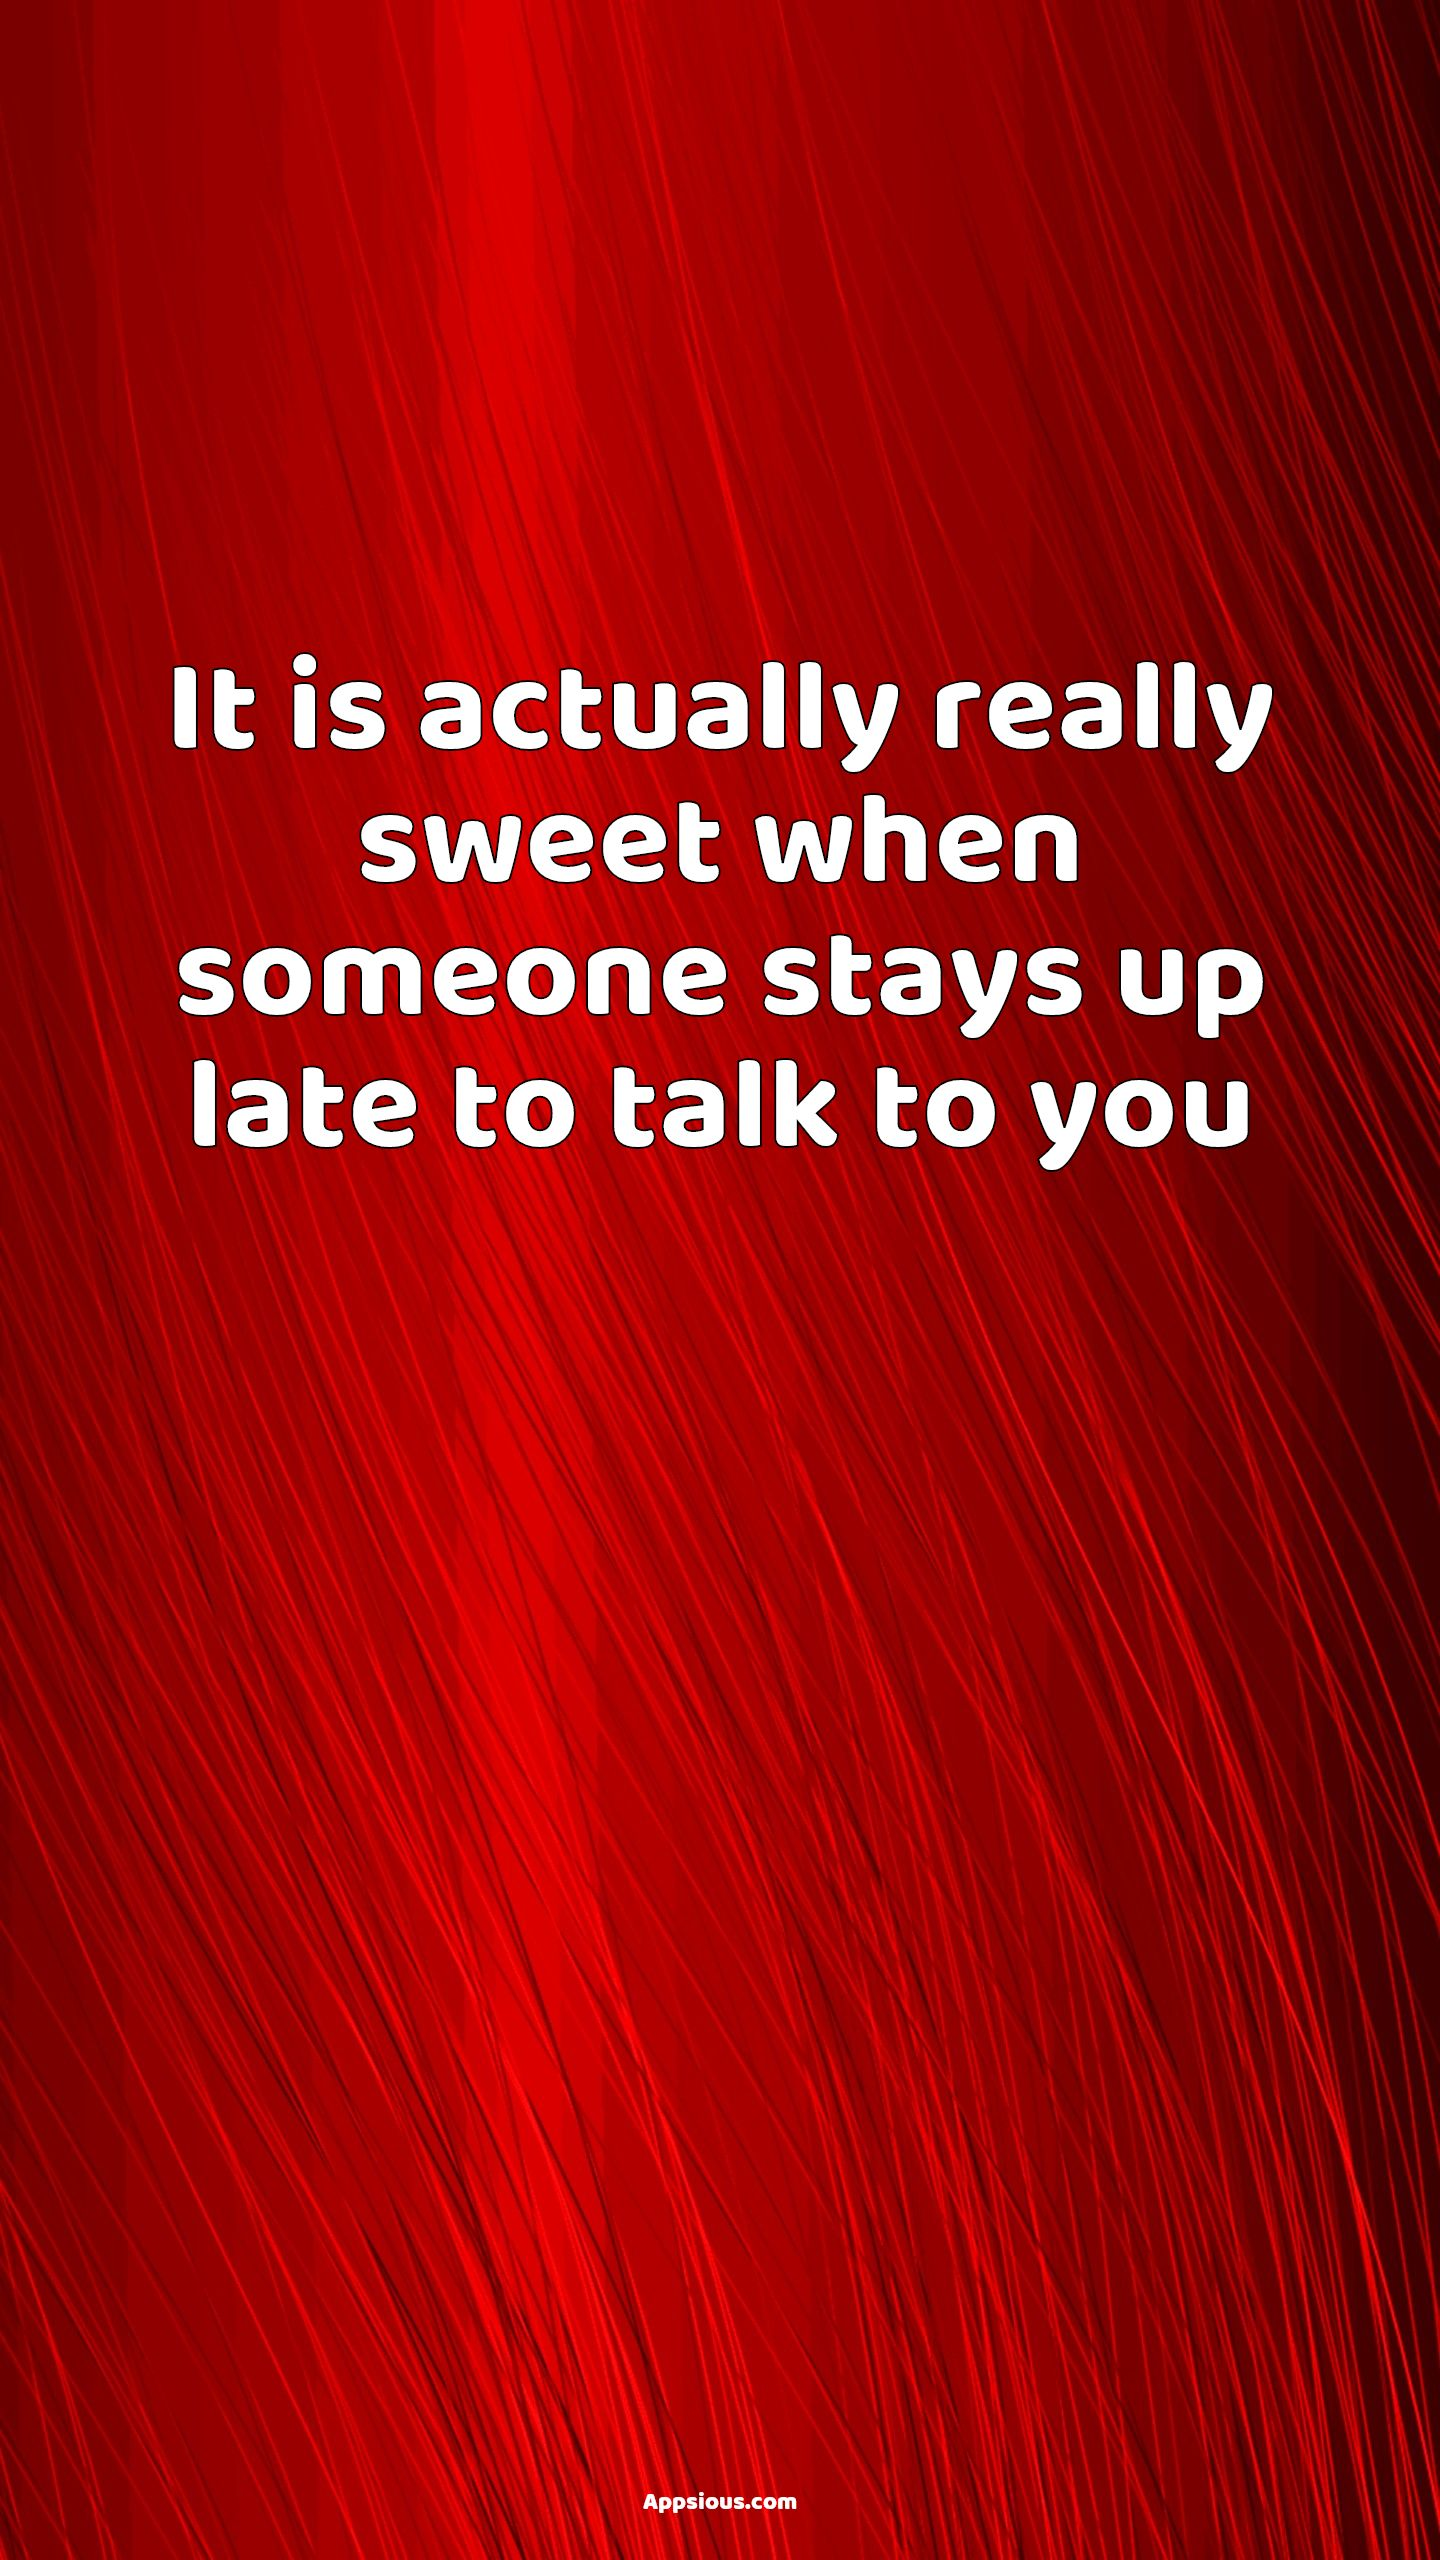 It is actually really sweet when someone stays up late to talk to you